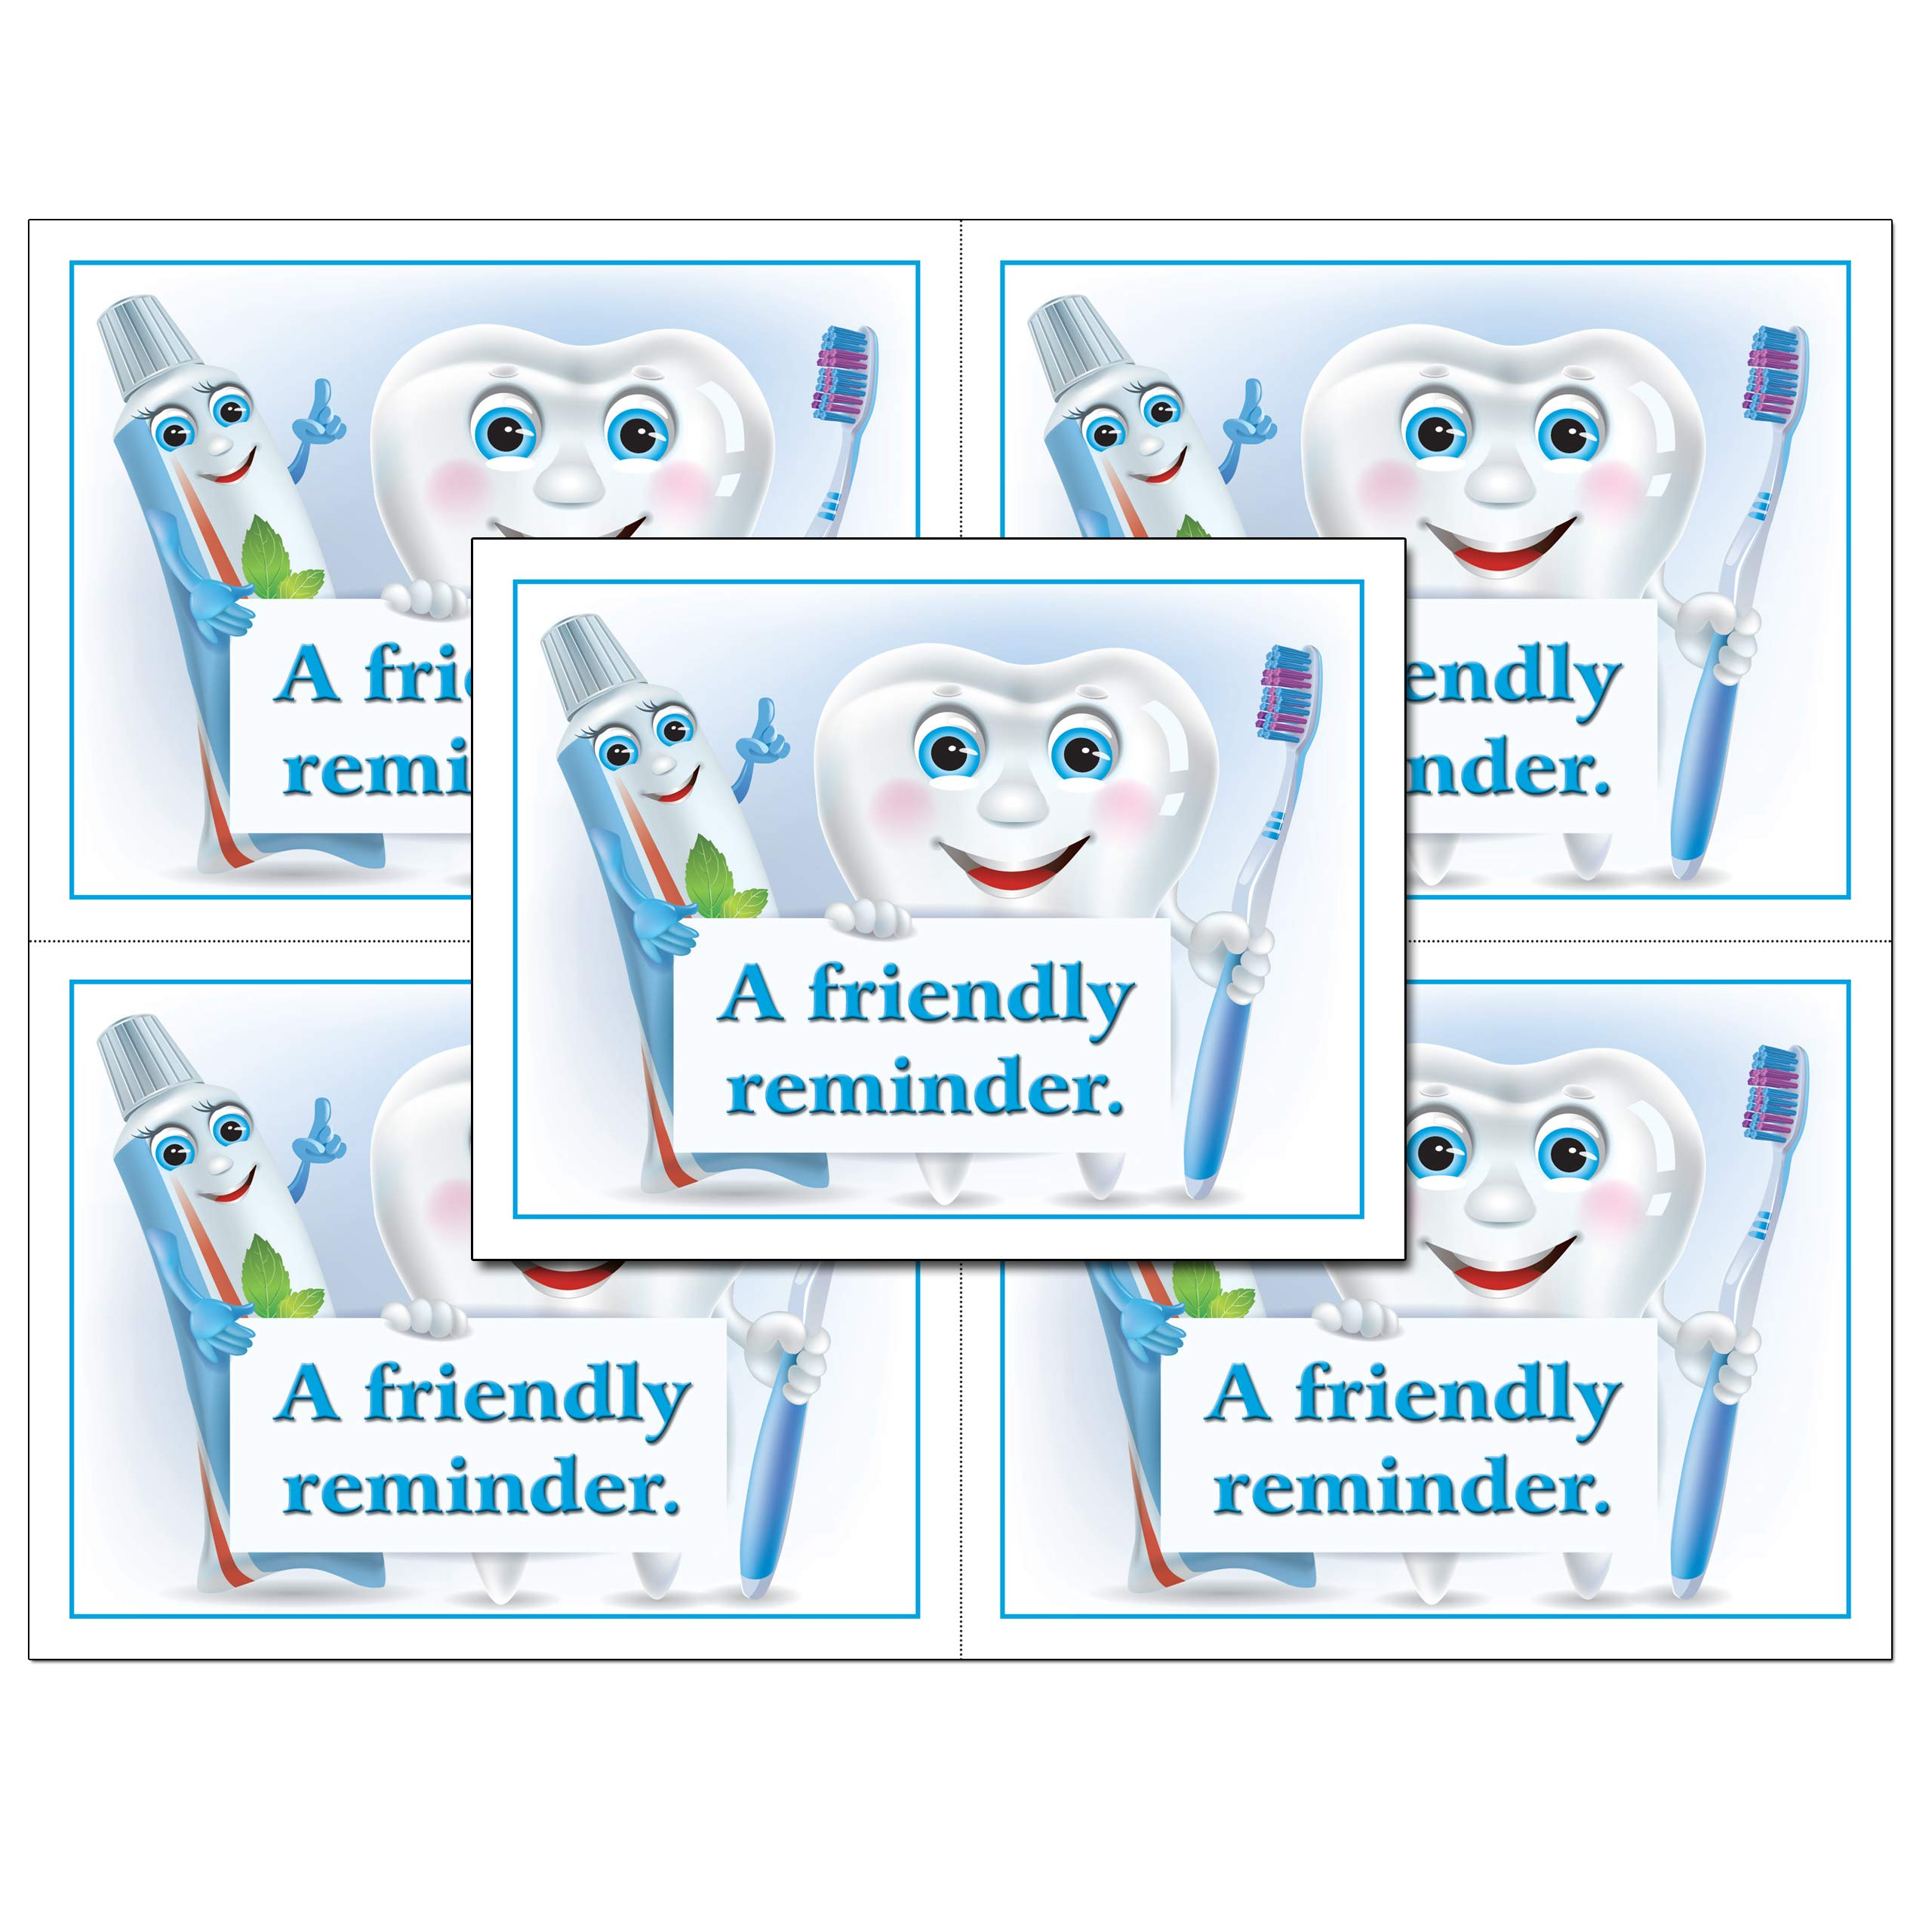 Laser Reminder Postcards, Dental Appointment Reminder Postcards. 4 Cards Perforated for Tear-Off at 4.25'' x 5.5'' on an 8.5'' x 11'' Sheet of 8 Pt Card Stock. DEN251-LZS (500)